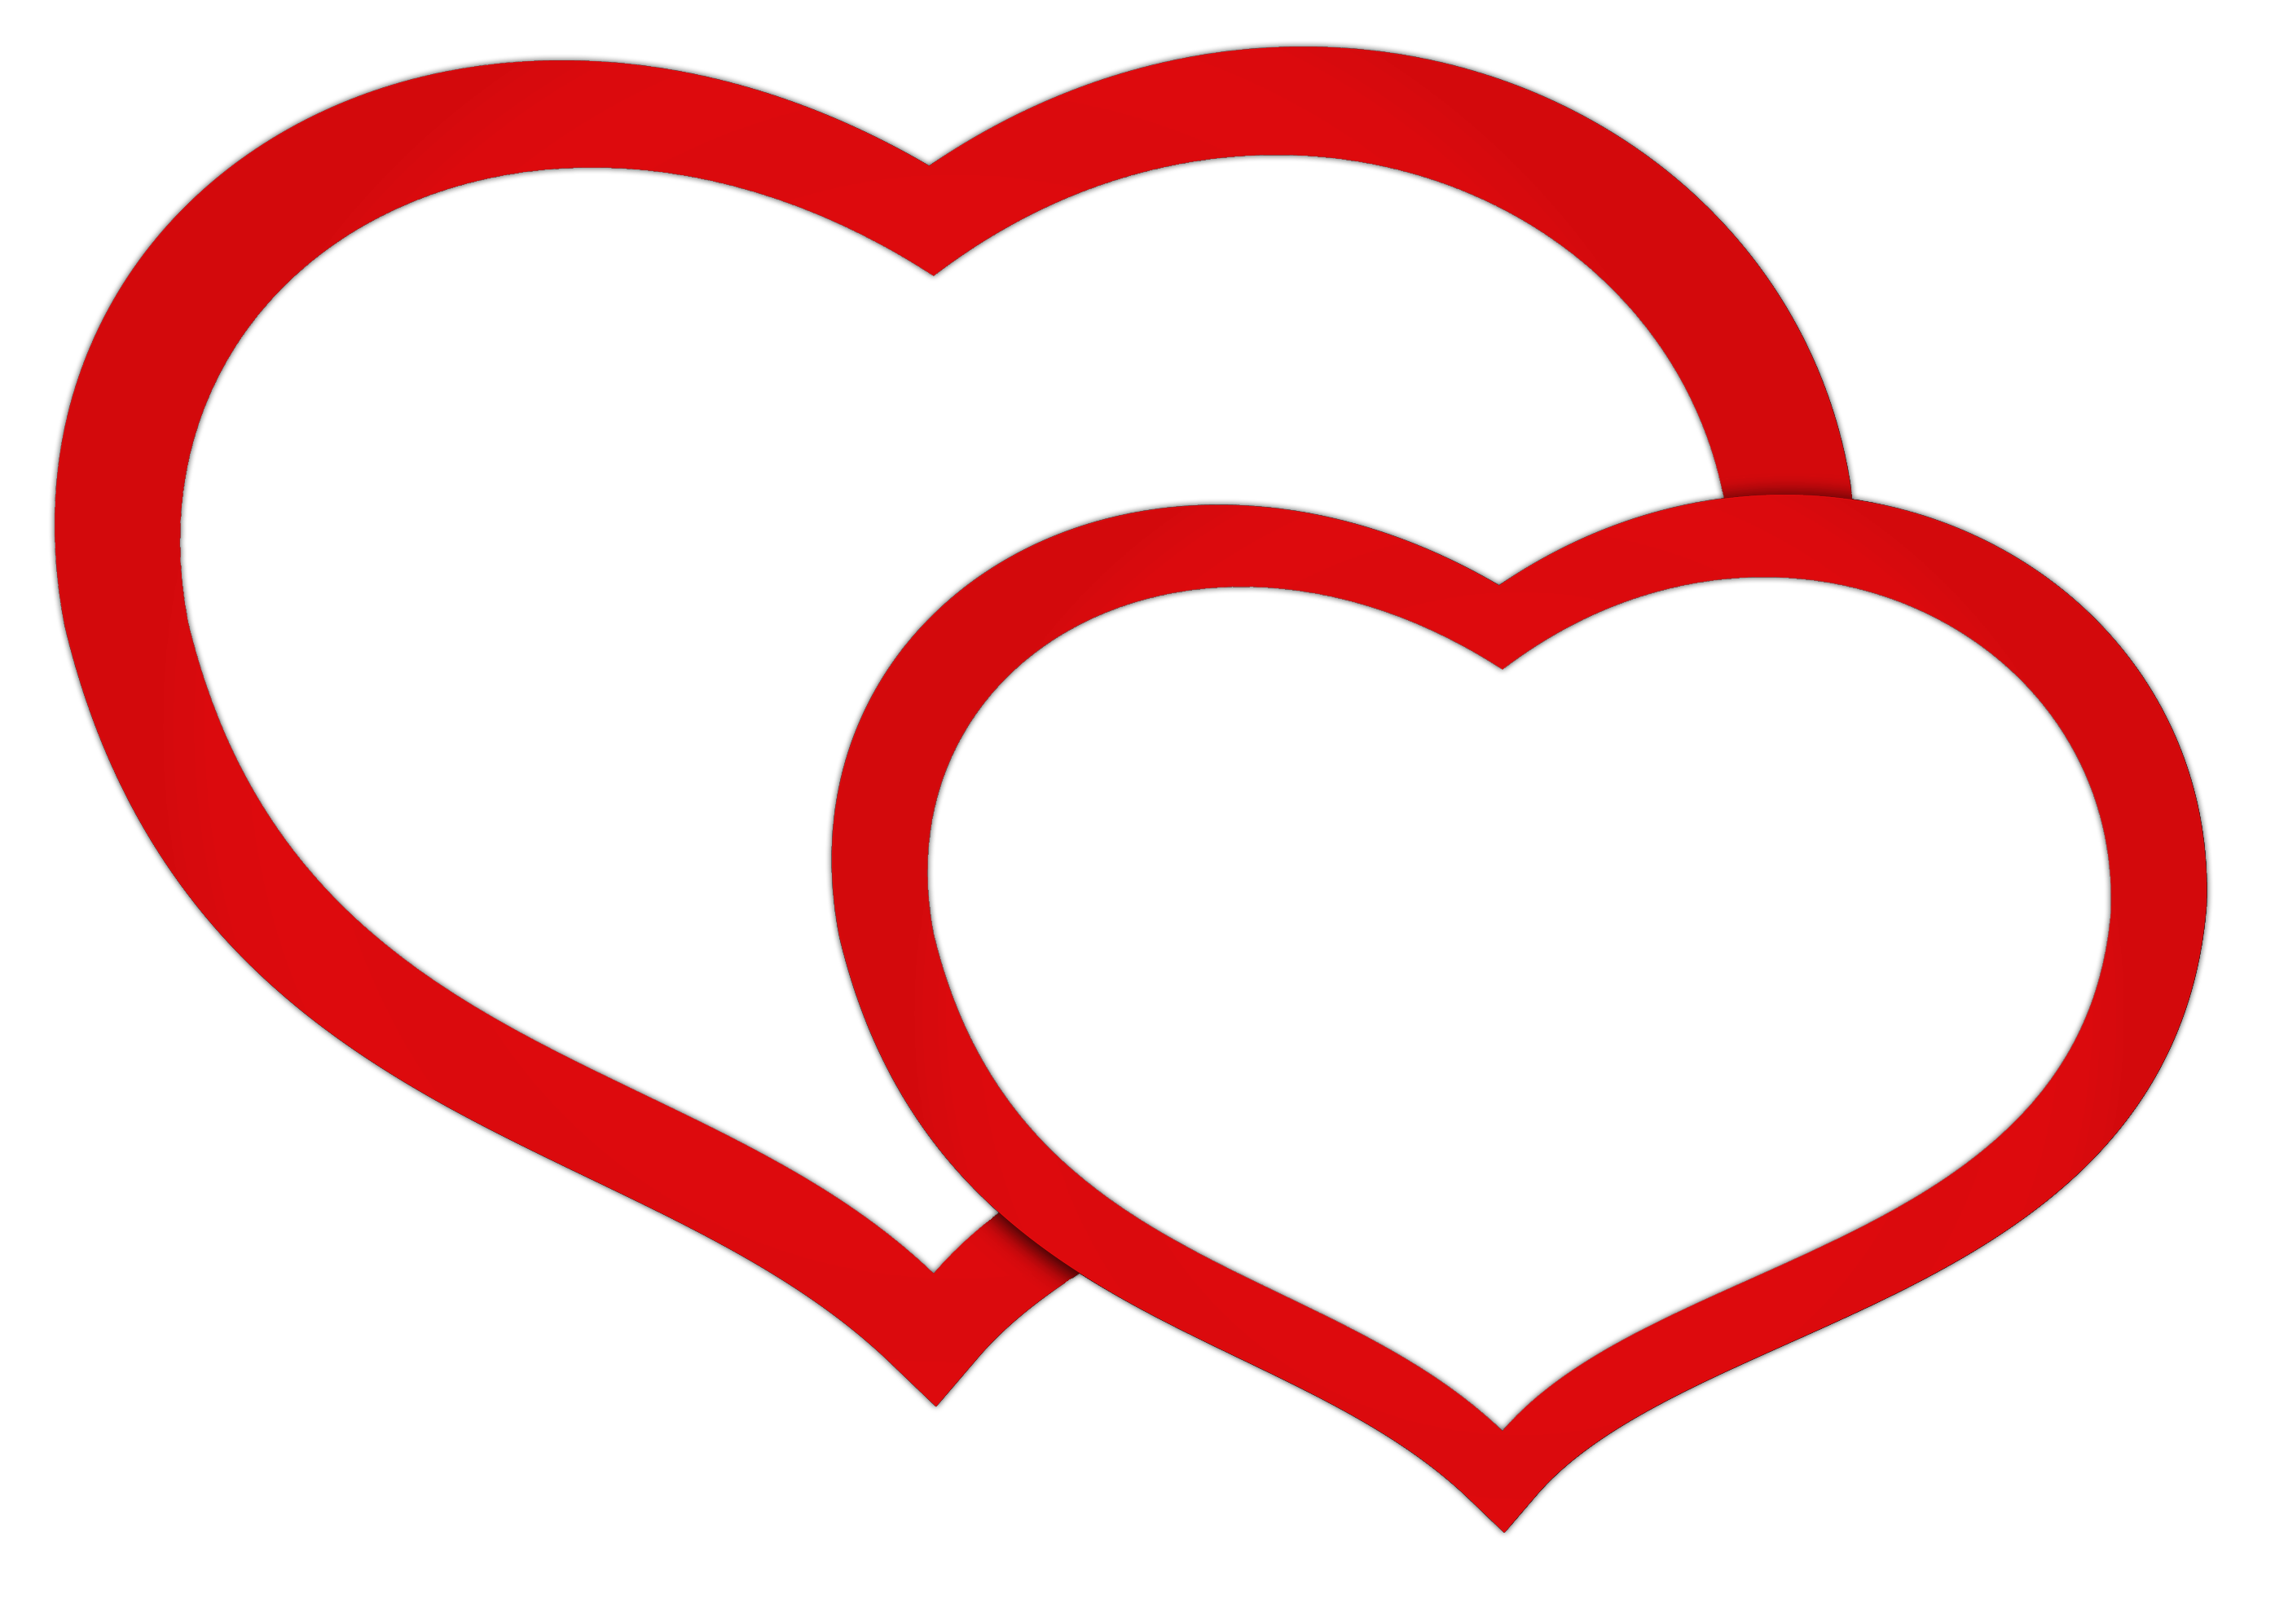 Heart clipart water. Free double hearts pictures